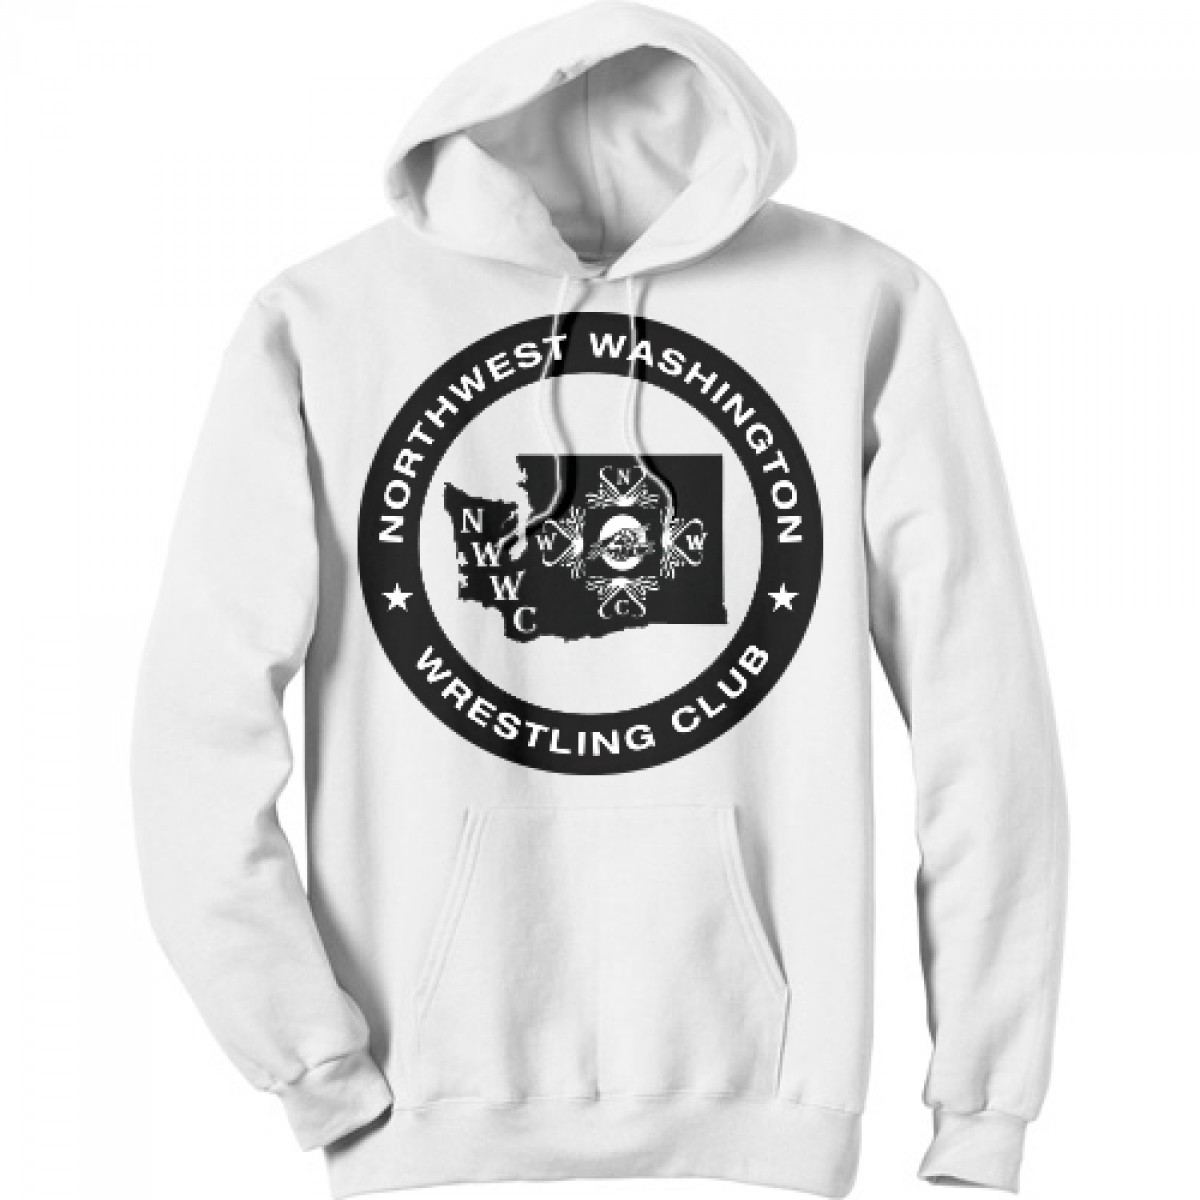 NWWC white hoodie with the main logo in black-White-2XL